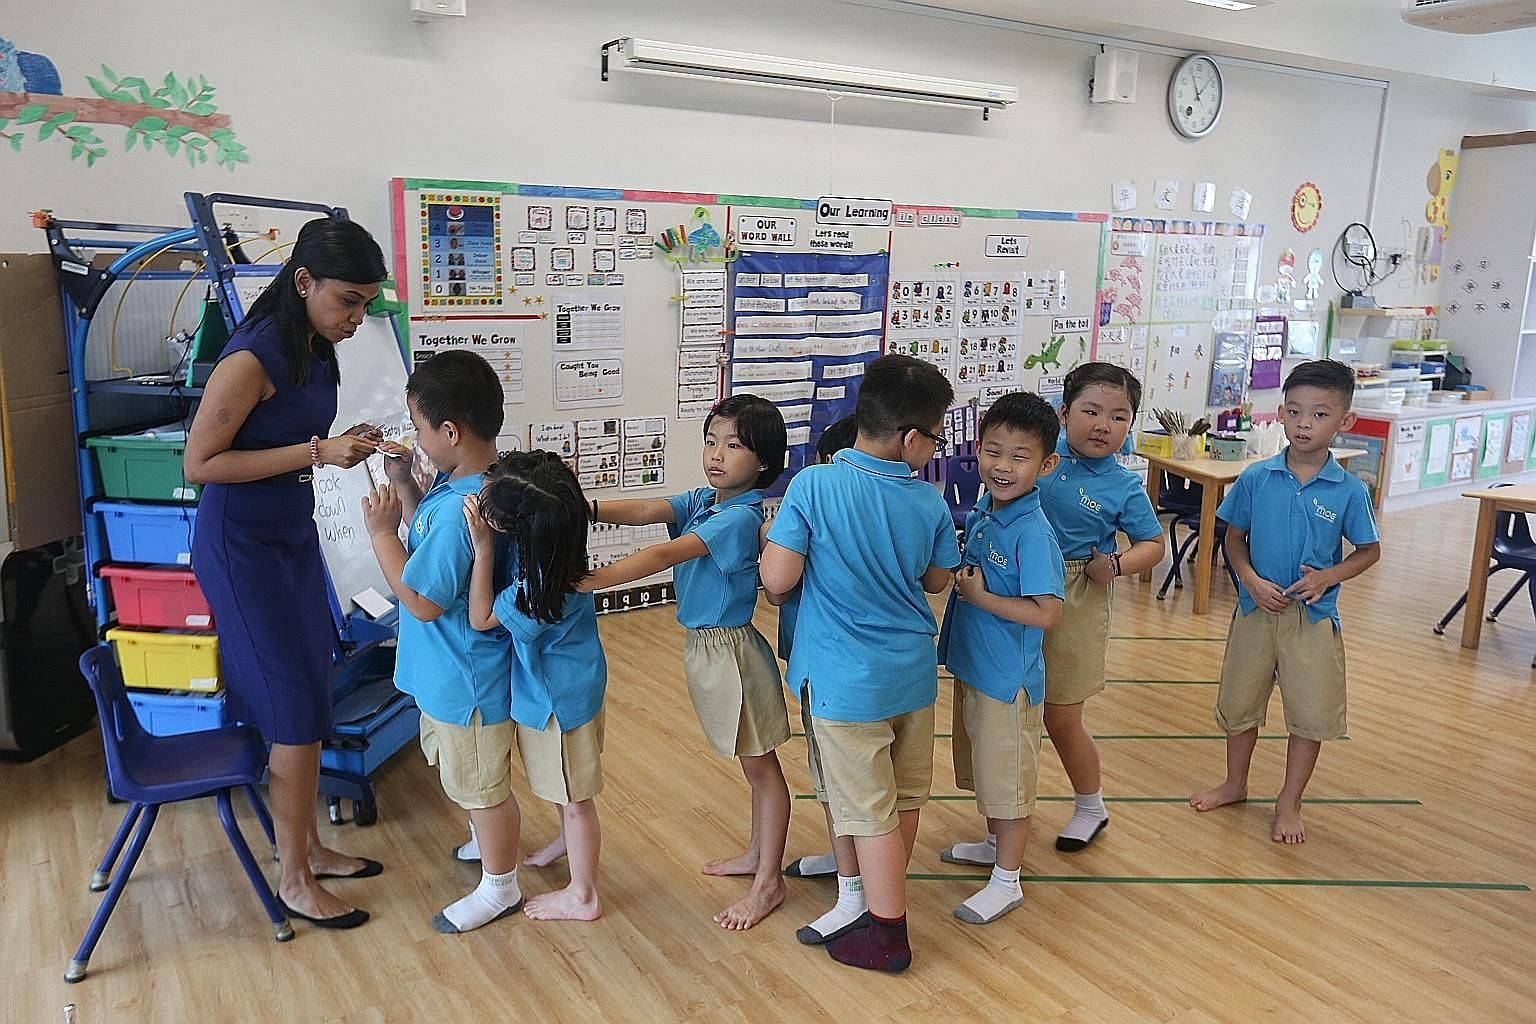 MOE kindergartens such as this in Punggol raise the quality of early childhood practices and offer affordable pre-school education.